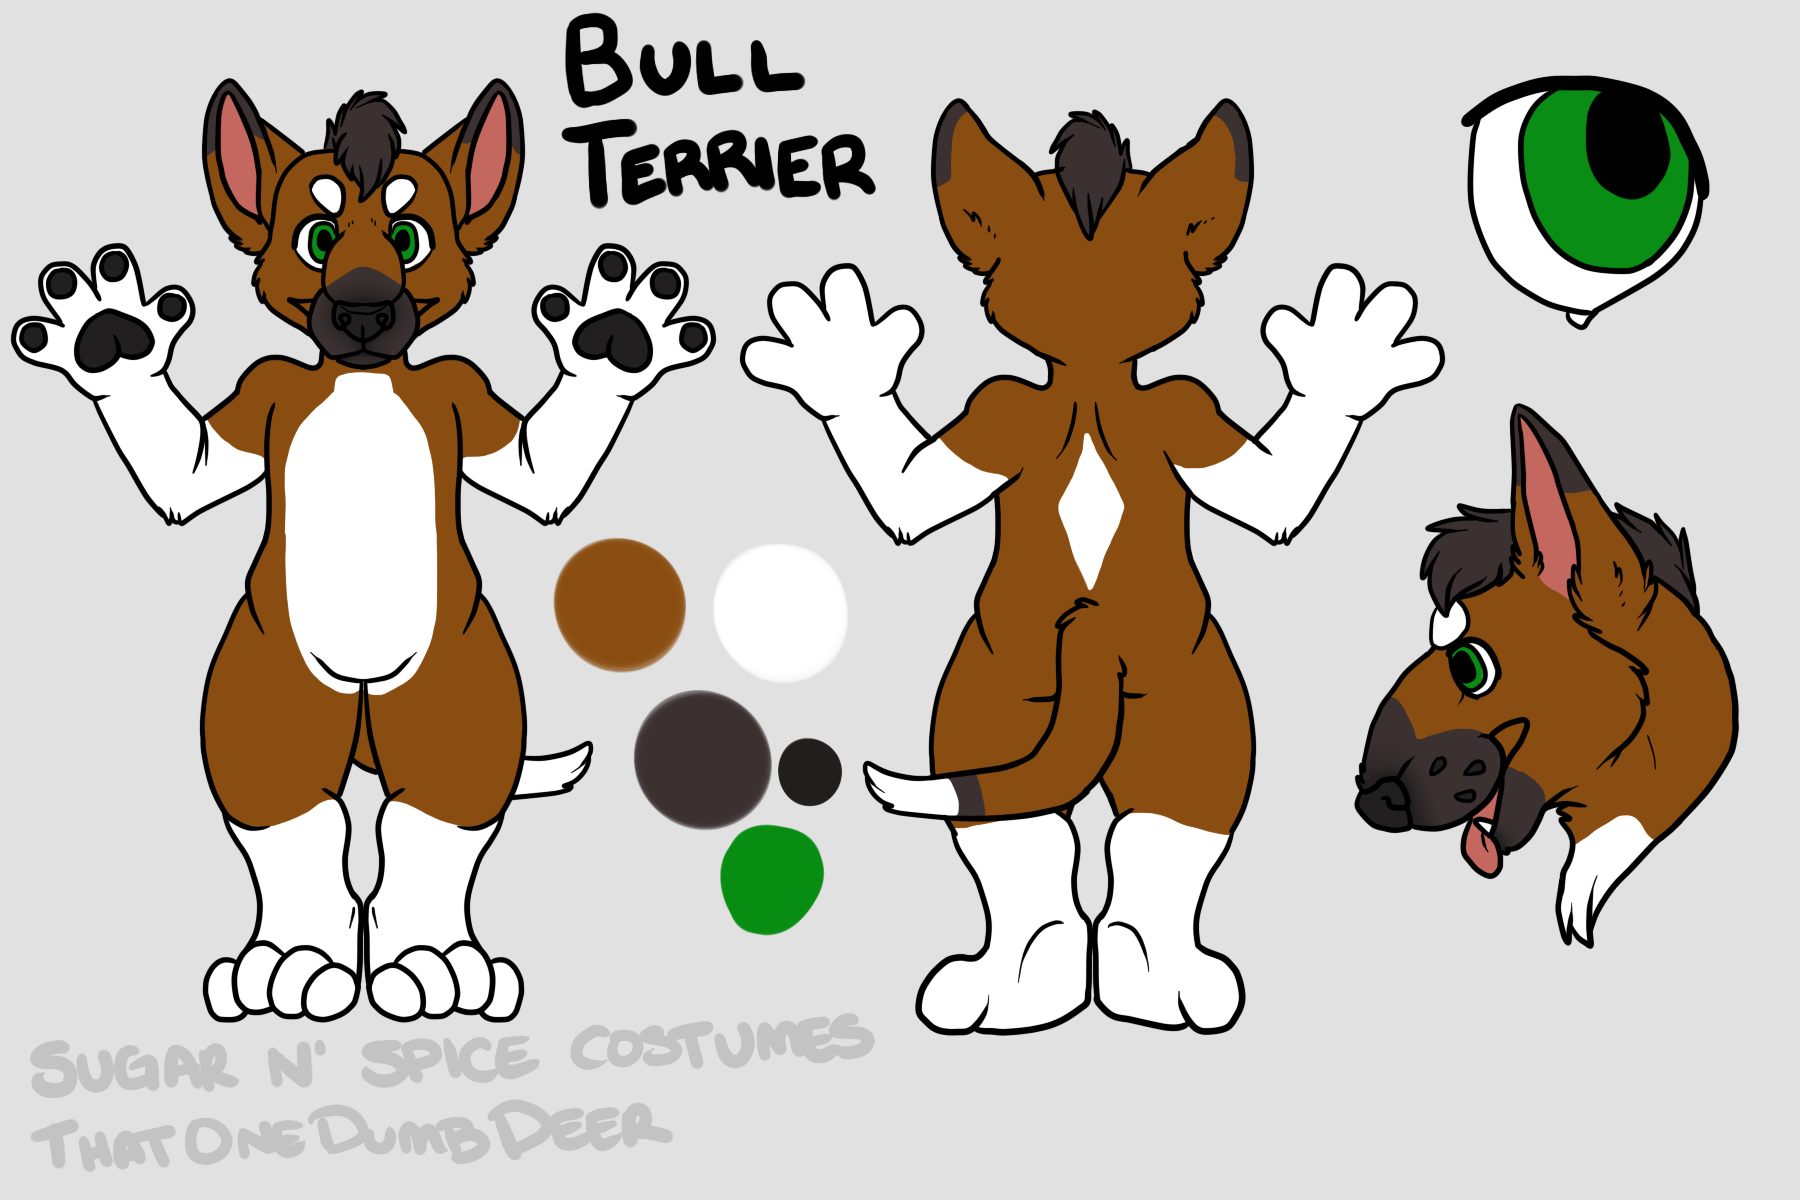 Tri Color Diamond bullie - $1800 Plantigrade Full suit$2100 Didgigrade Full suit. This suit will include a badge from Lilbobleat